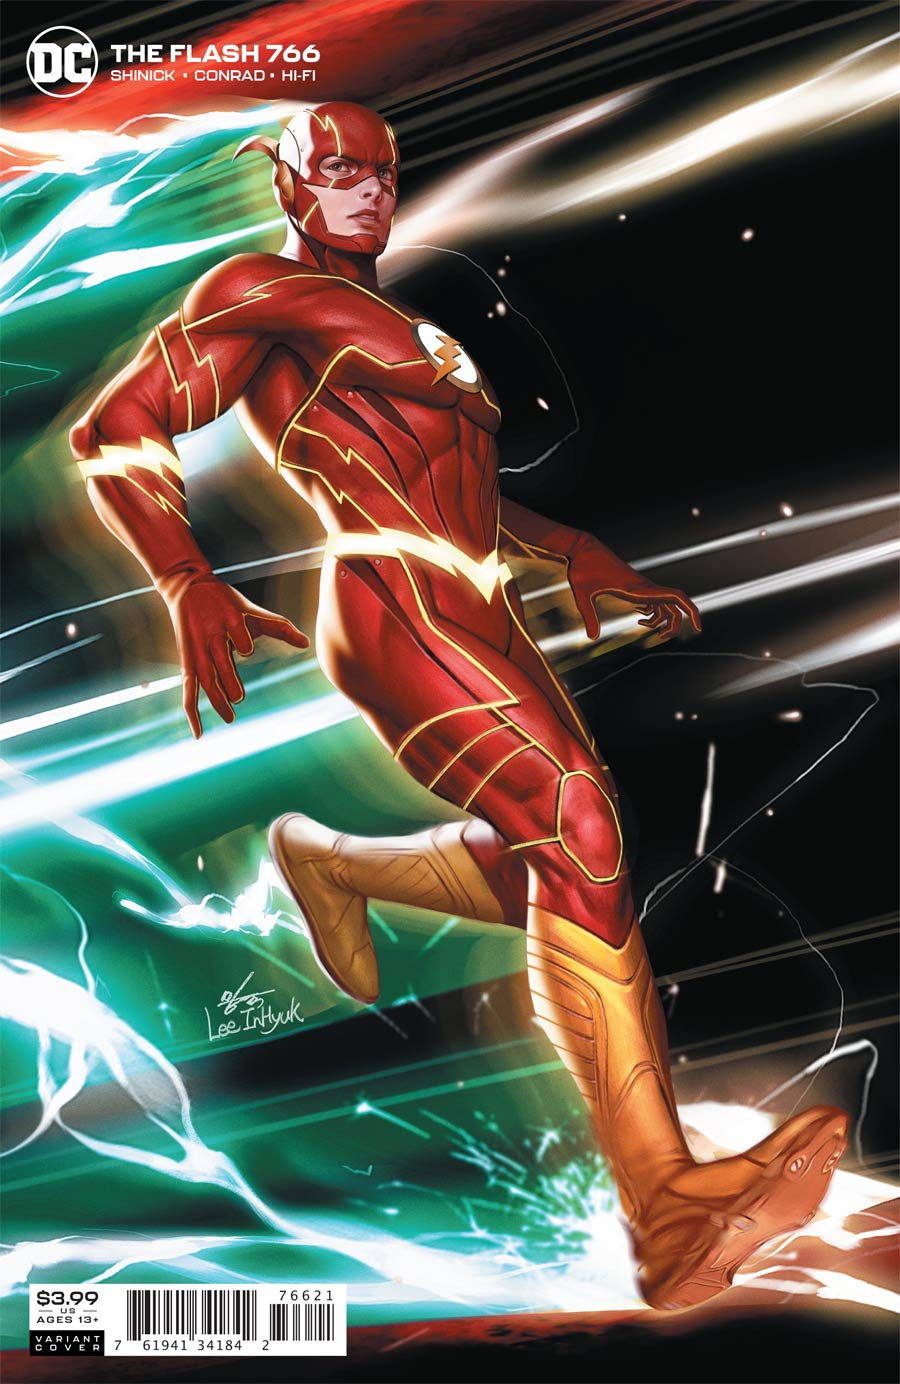 Flash Vol 5 #766 Cover B Variant Inhyuk Lee Cover